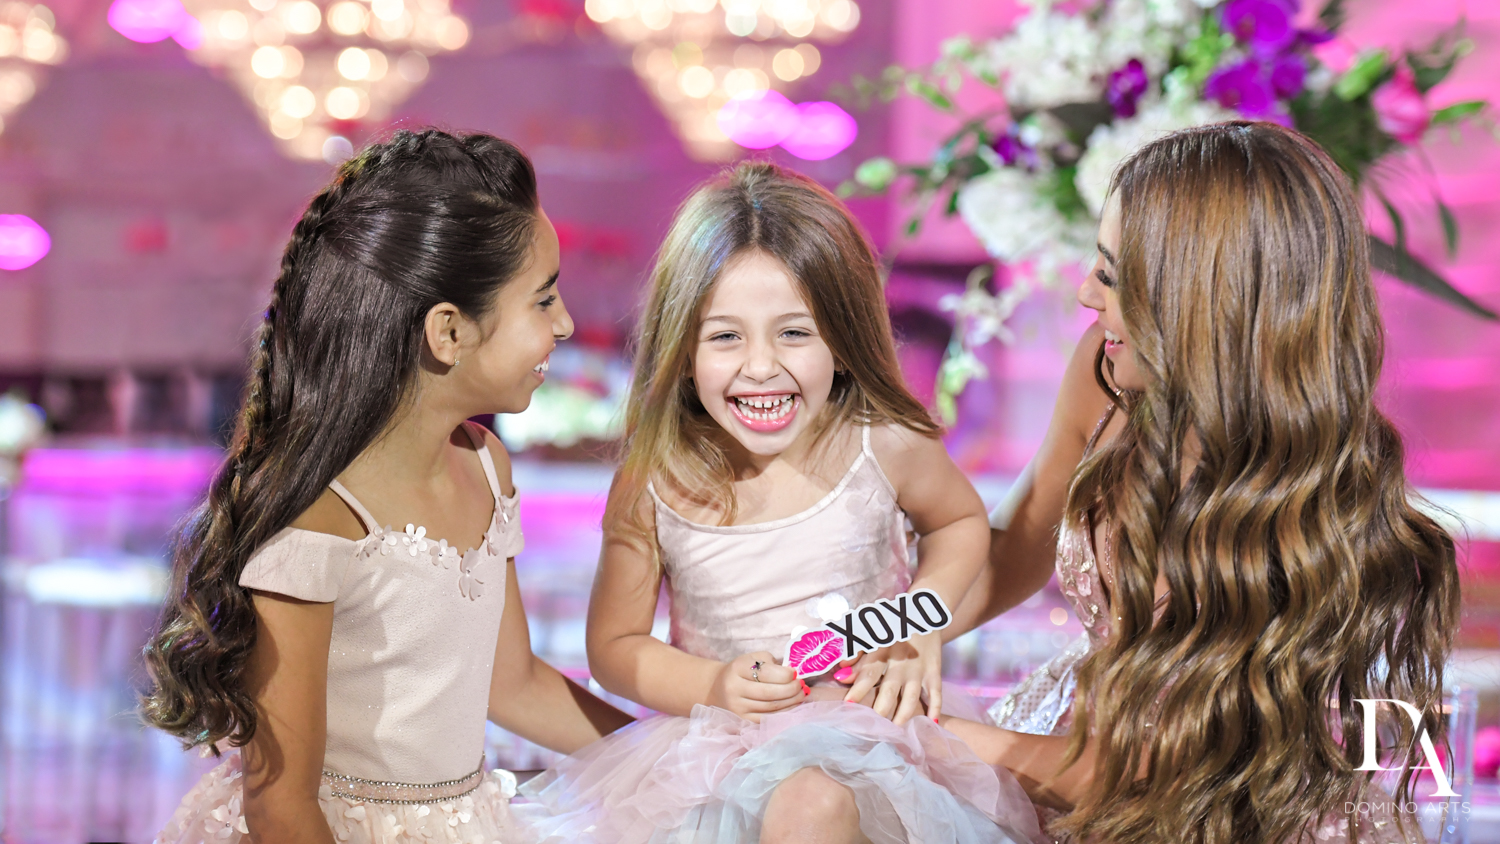 siblings at Pink XO Bat Mitzvah at The Venue Crystal Ballroom by Domino Arts Photography